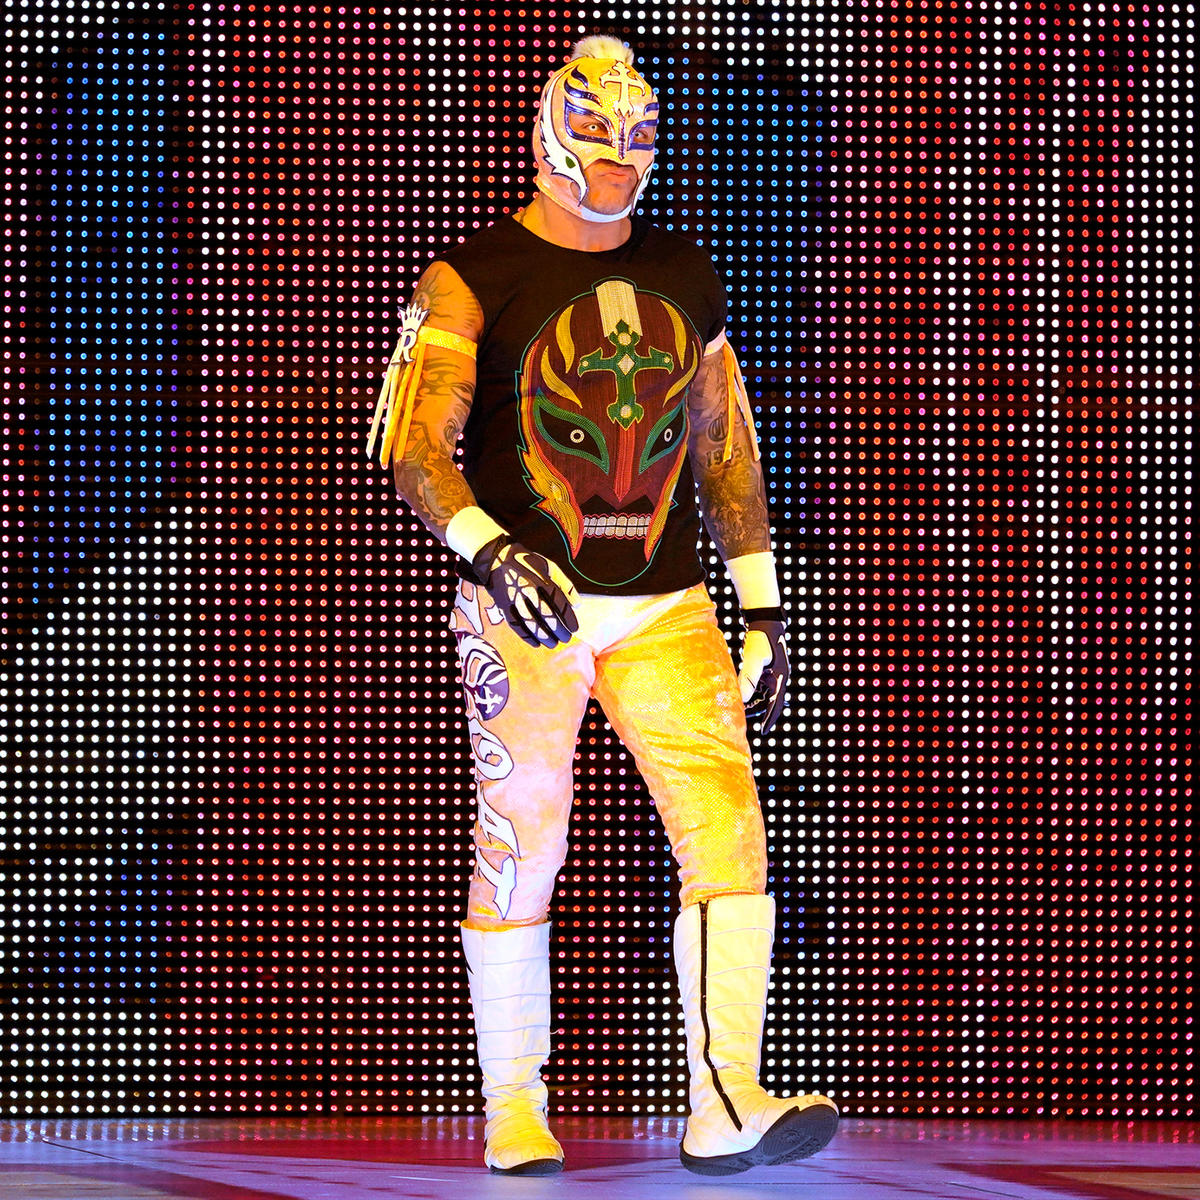 Suddenly, Rey Mysterio interrupts The Living Truth!